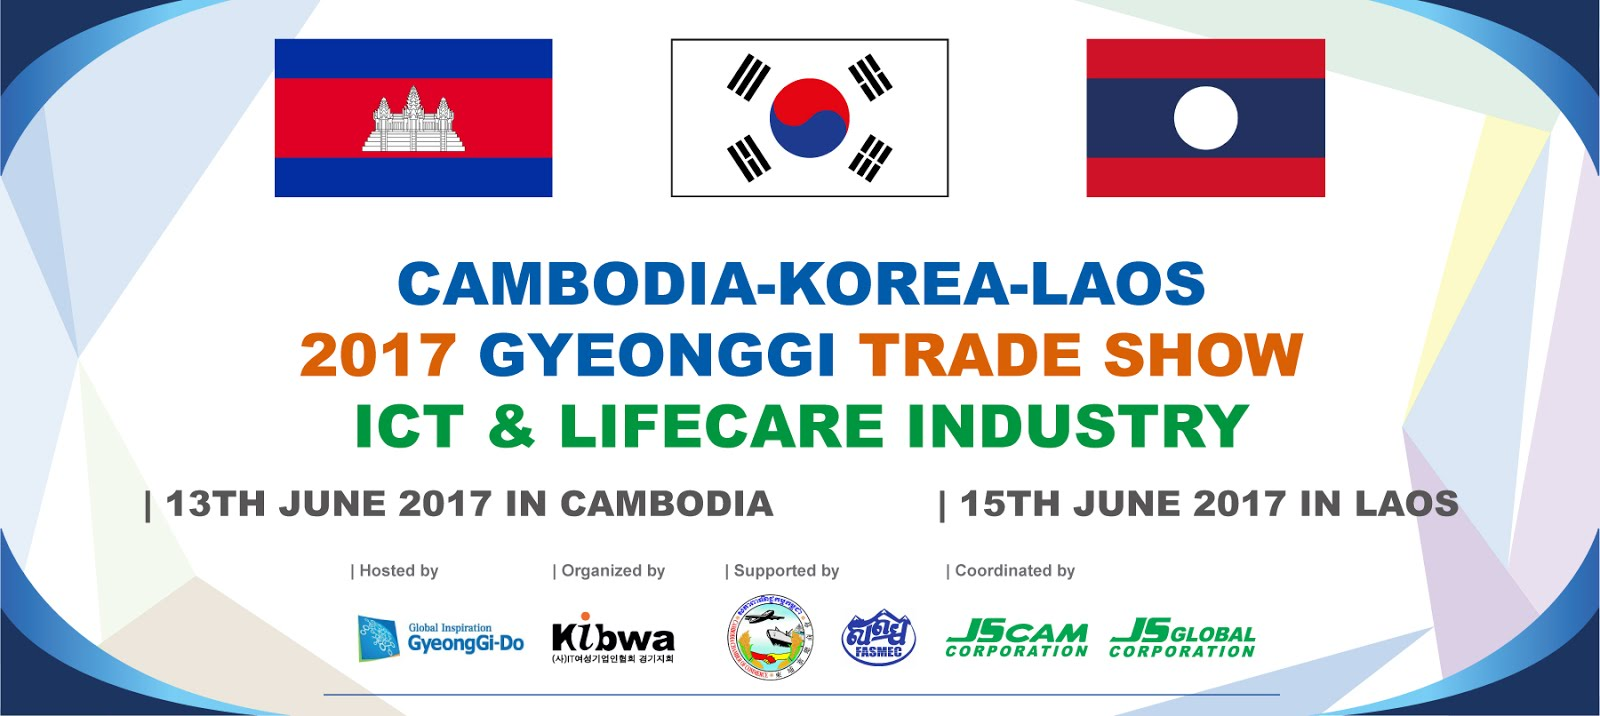 CAMBODIA-KOREA 2017 GYEONGGI TRADE SHOW ICT & LIFECARE INDUSTRY